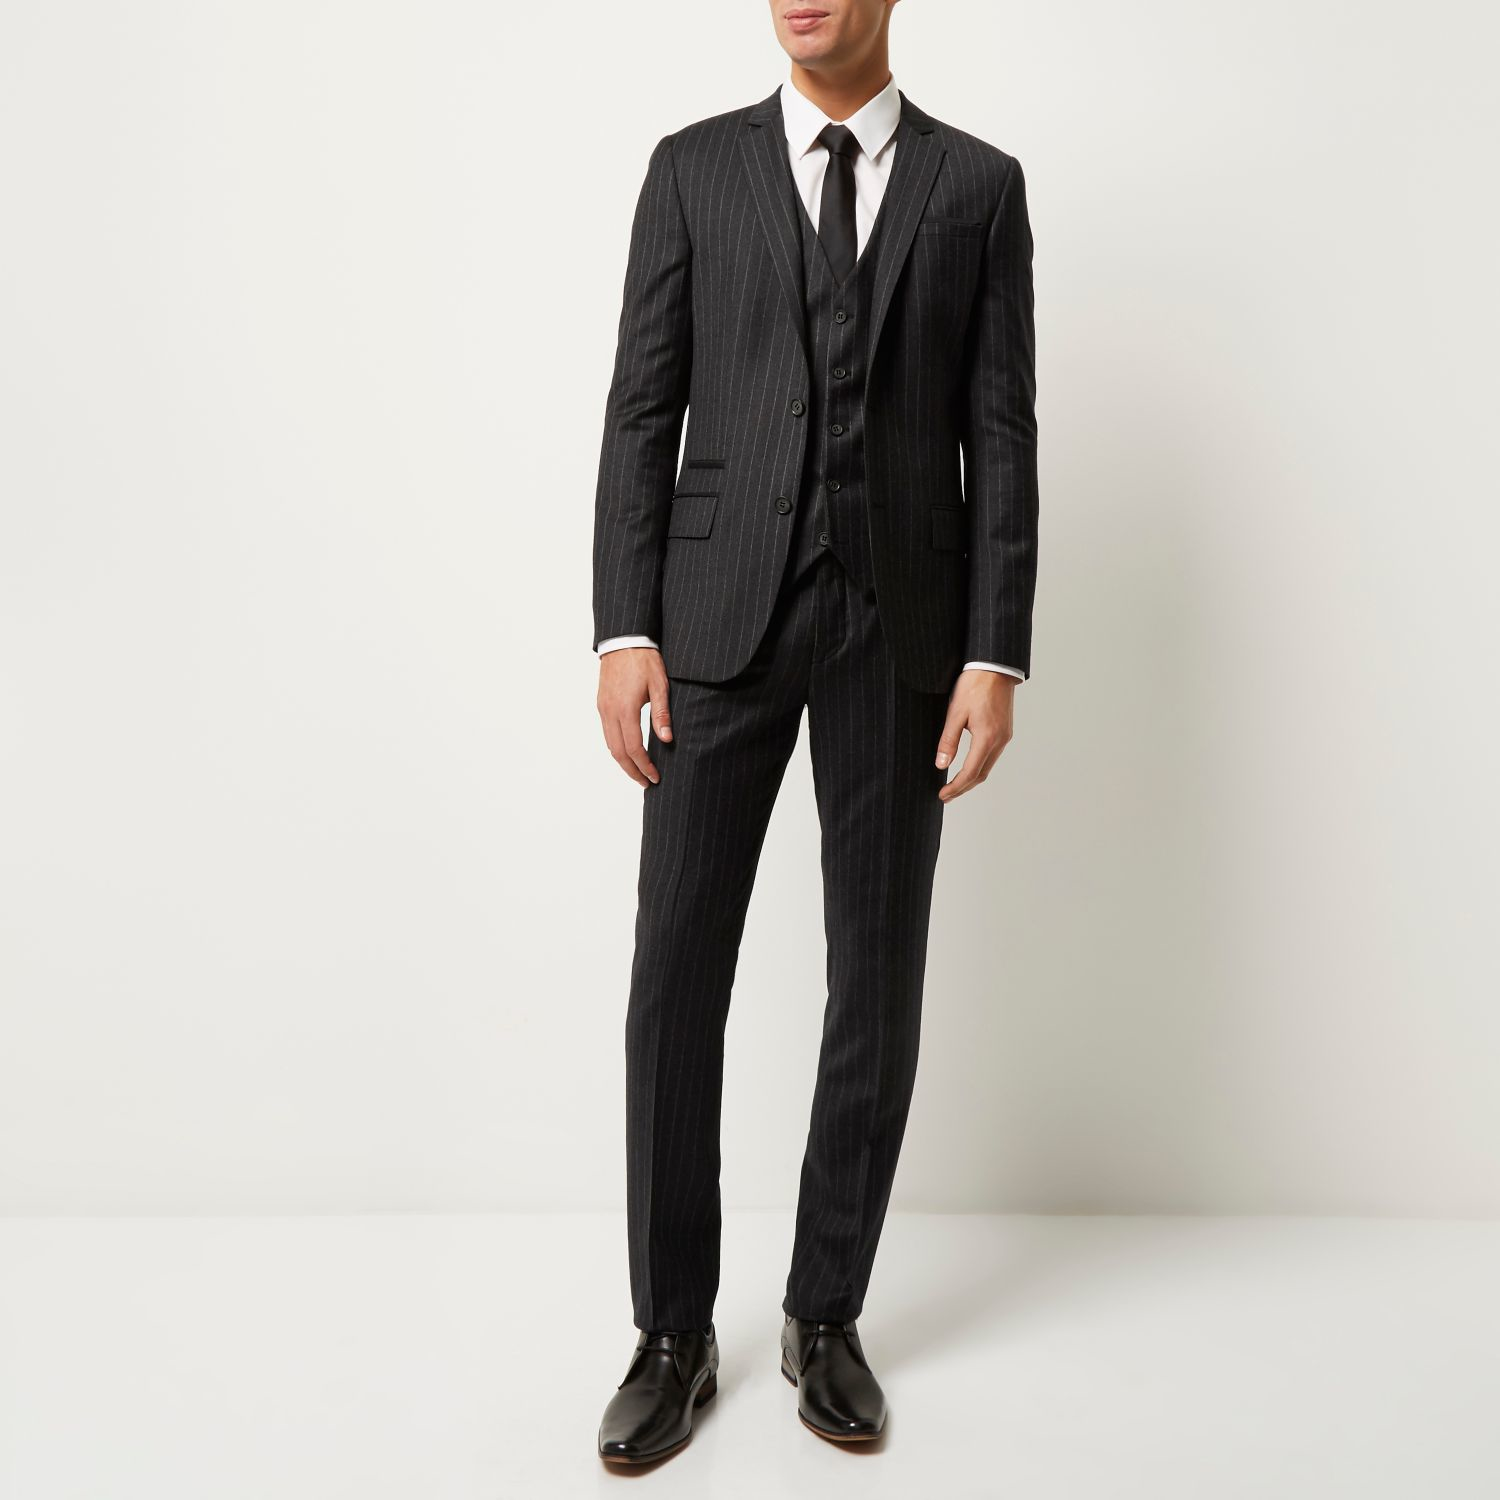 River Island Grey Suit Trousers